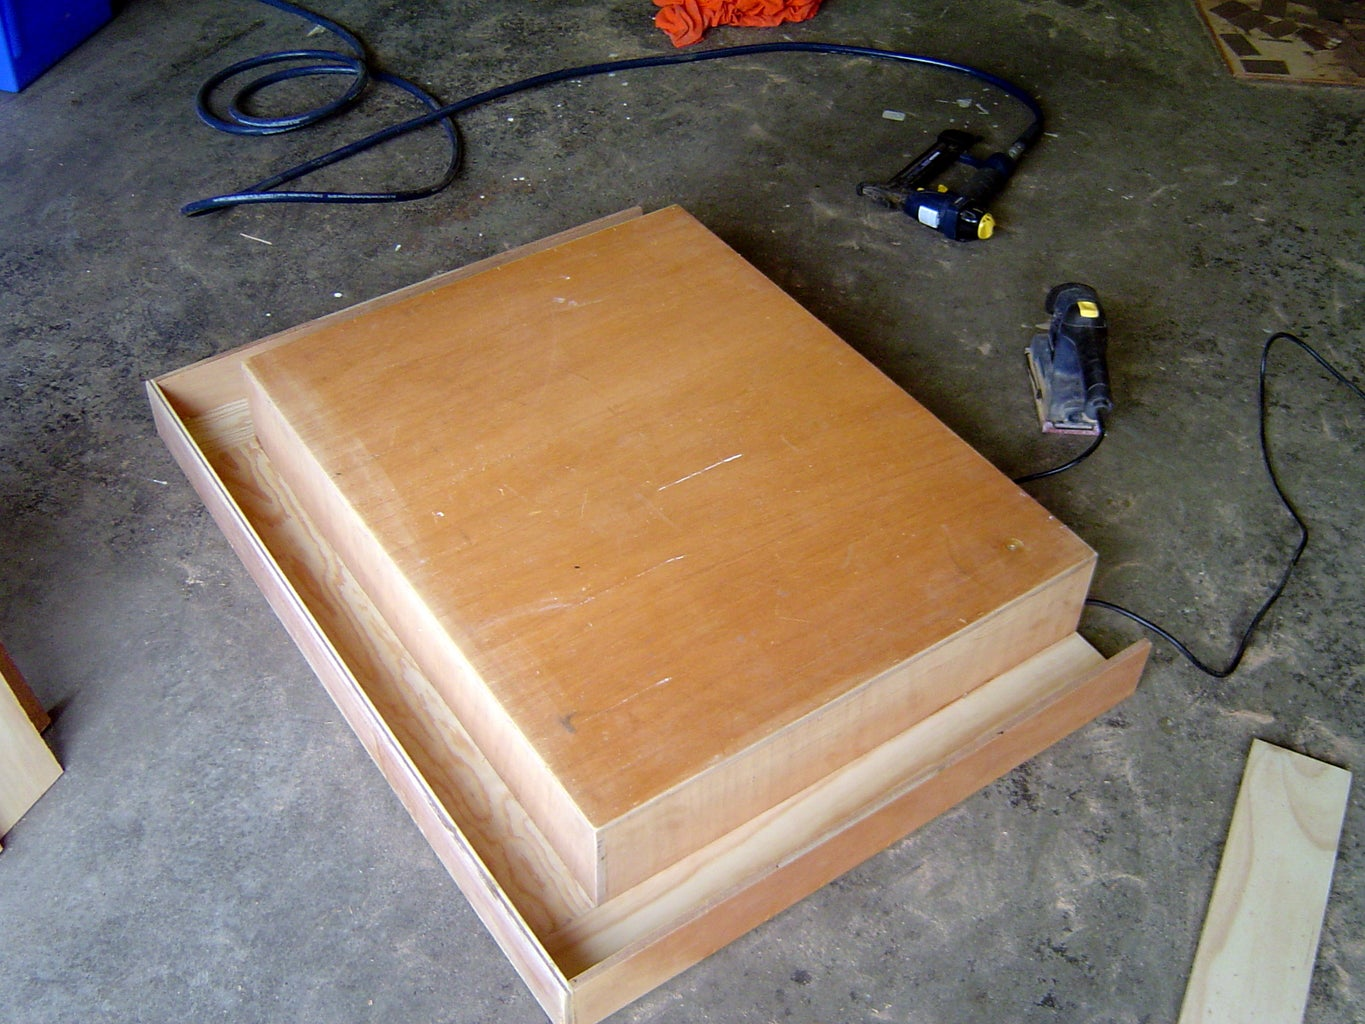 Build Table Top and Gutter